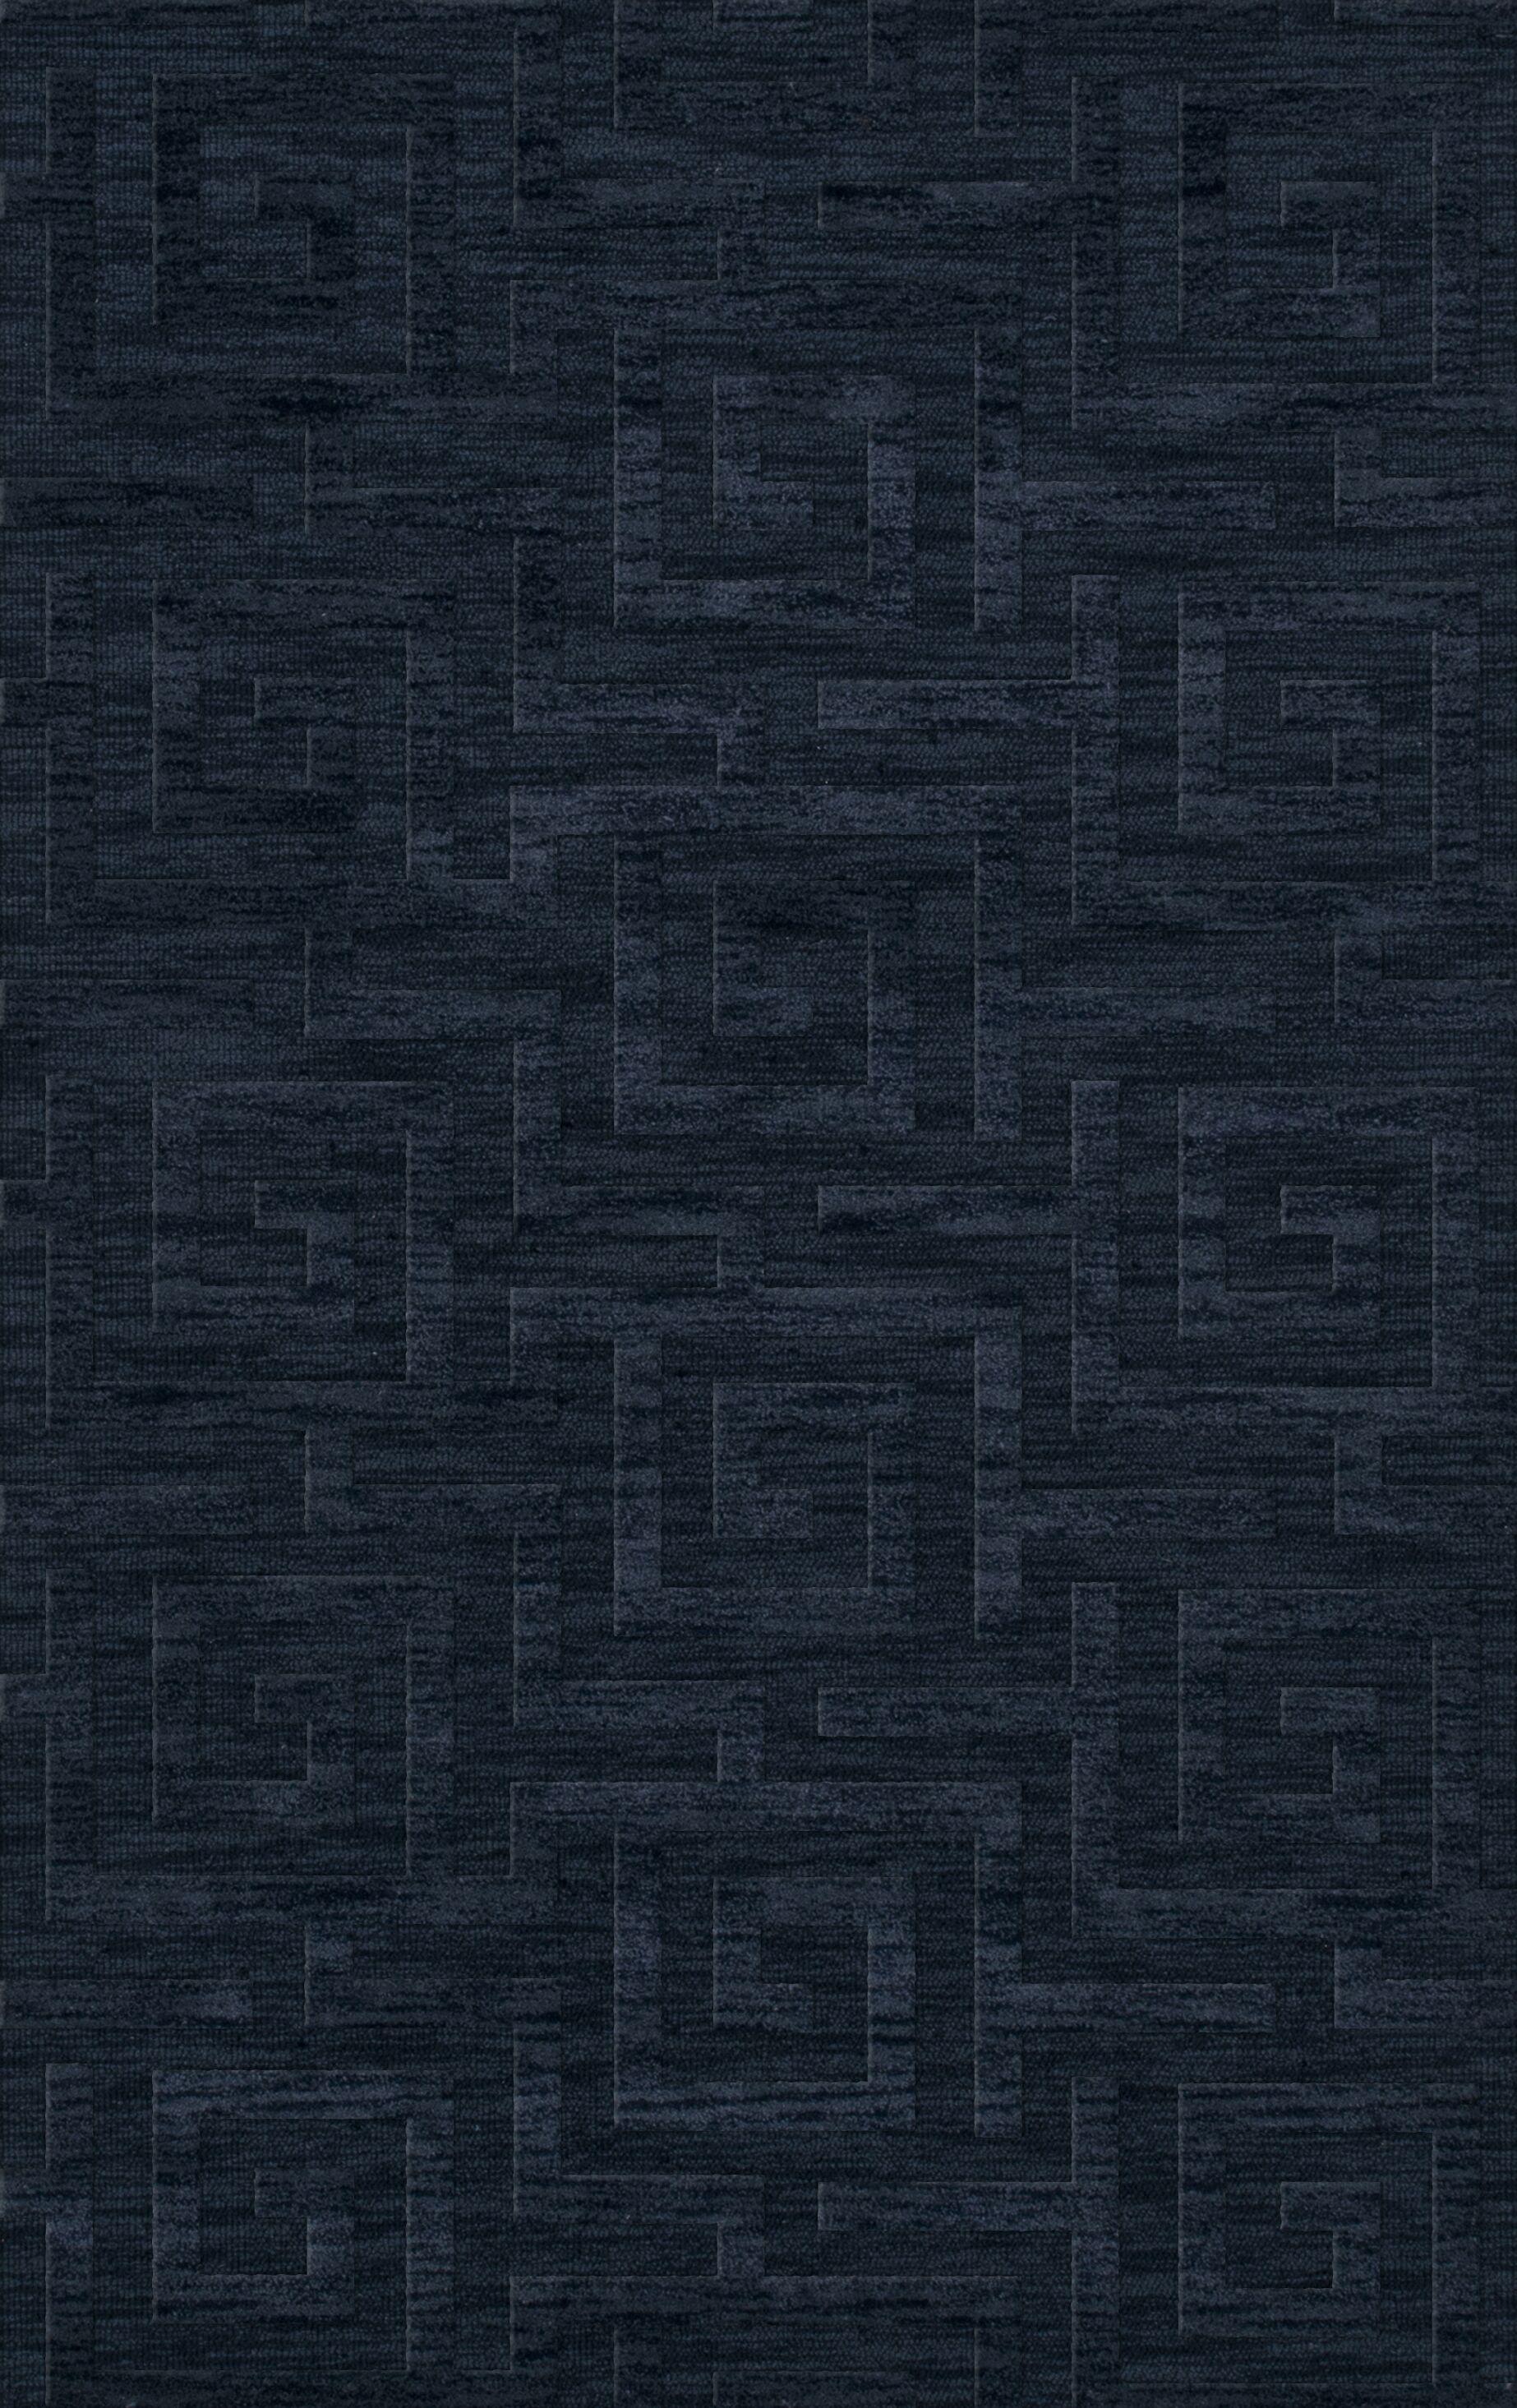 Dover Tufted Wool Navy Area Rug Rug Size: Rectangle 8' x 10'